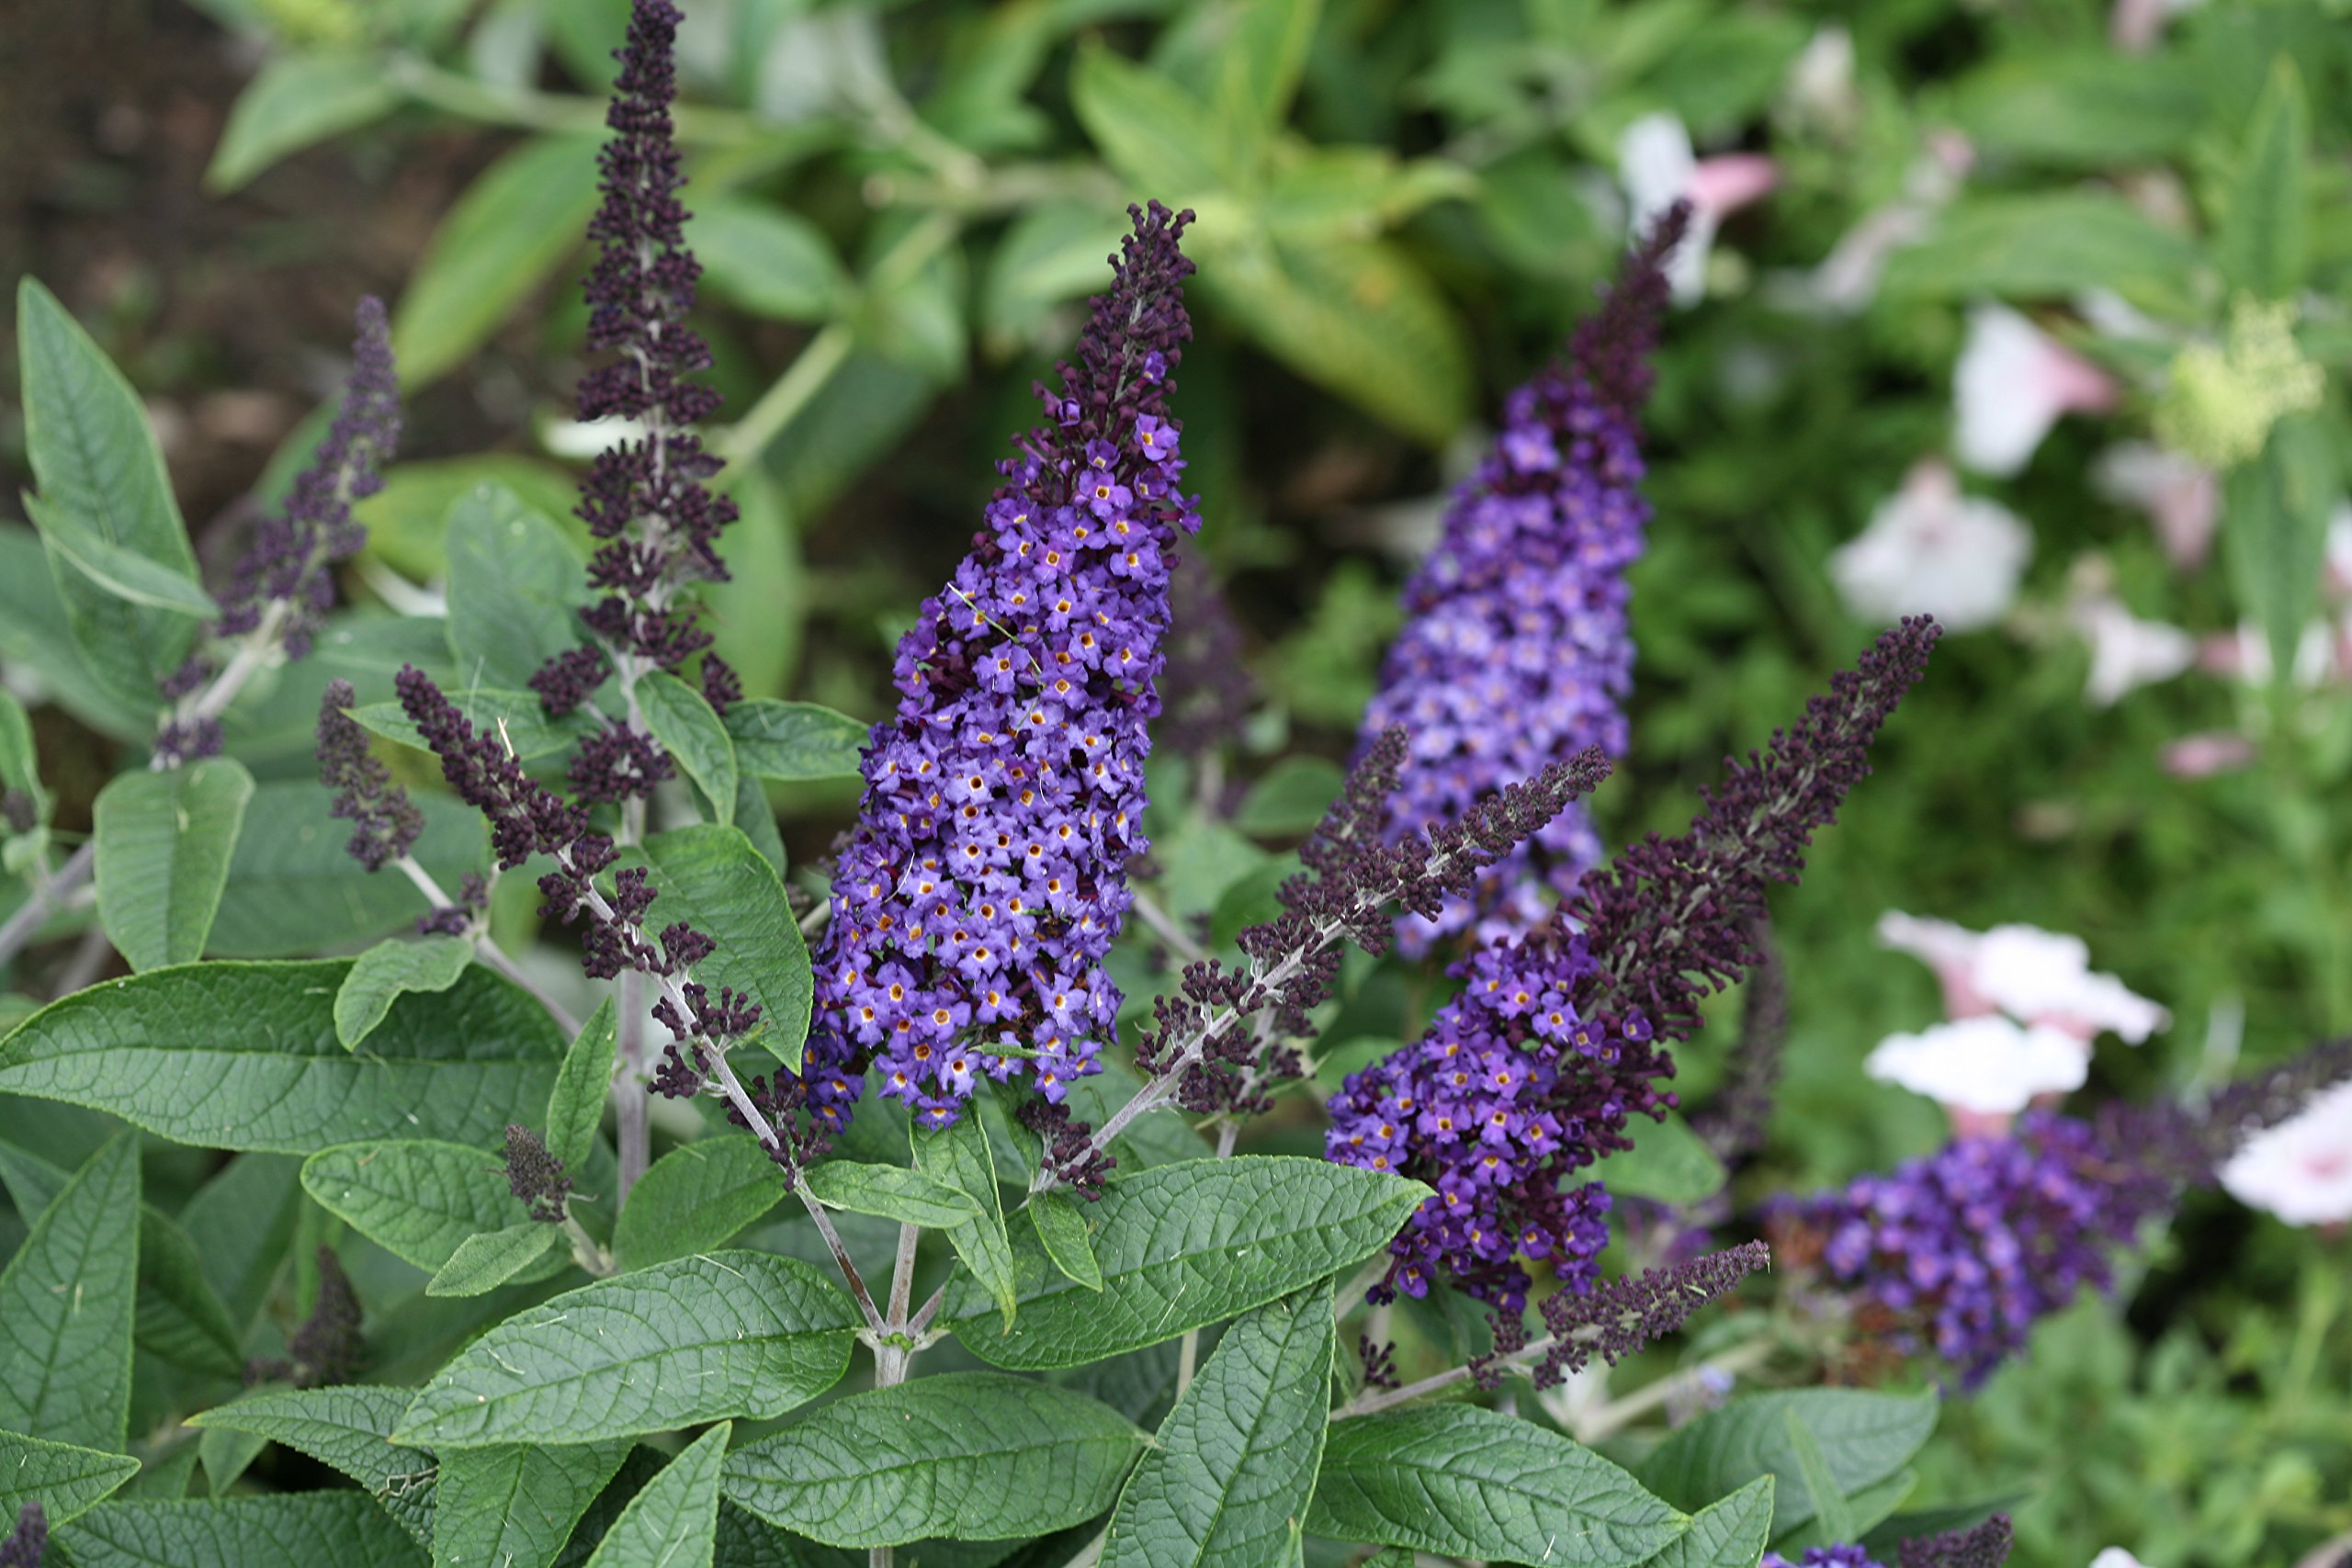 Pugster Blue Butterfly Bush (Buddleia) Live Shrub, Blue Flowers, 1 Gallon by Proven Winners (Image #5)